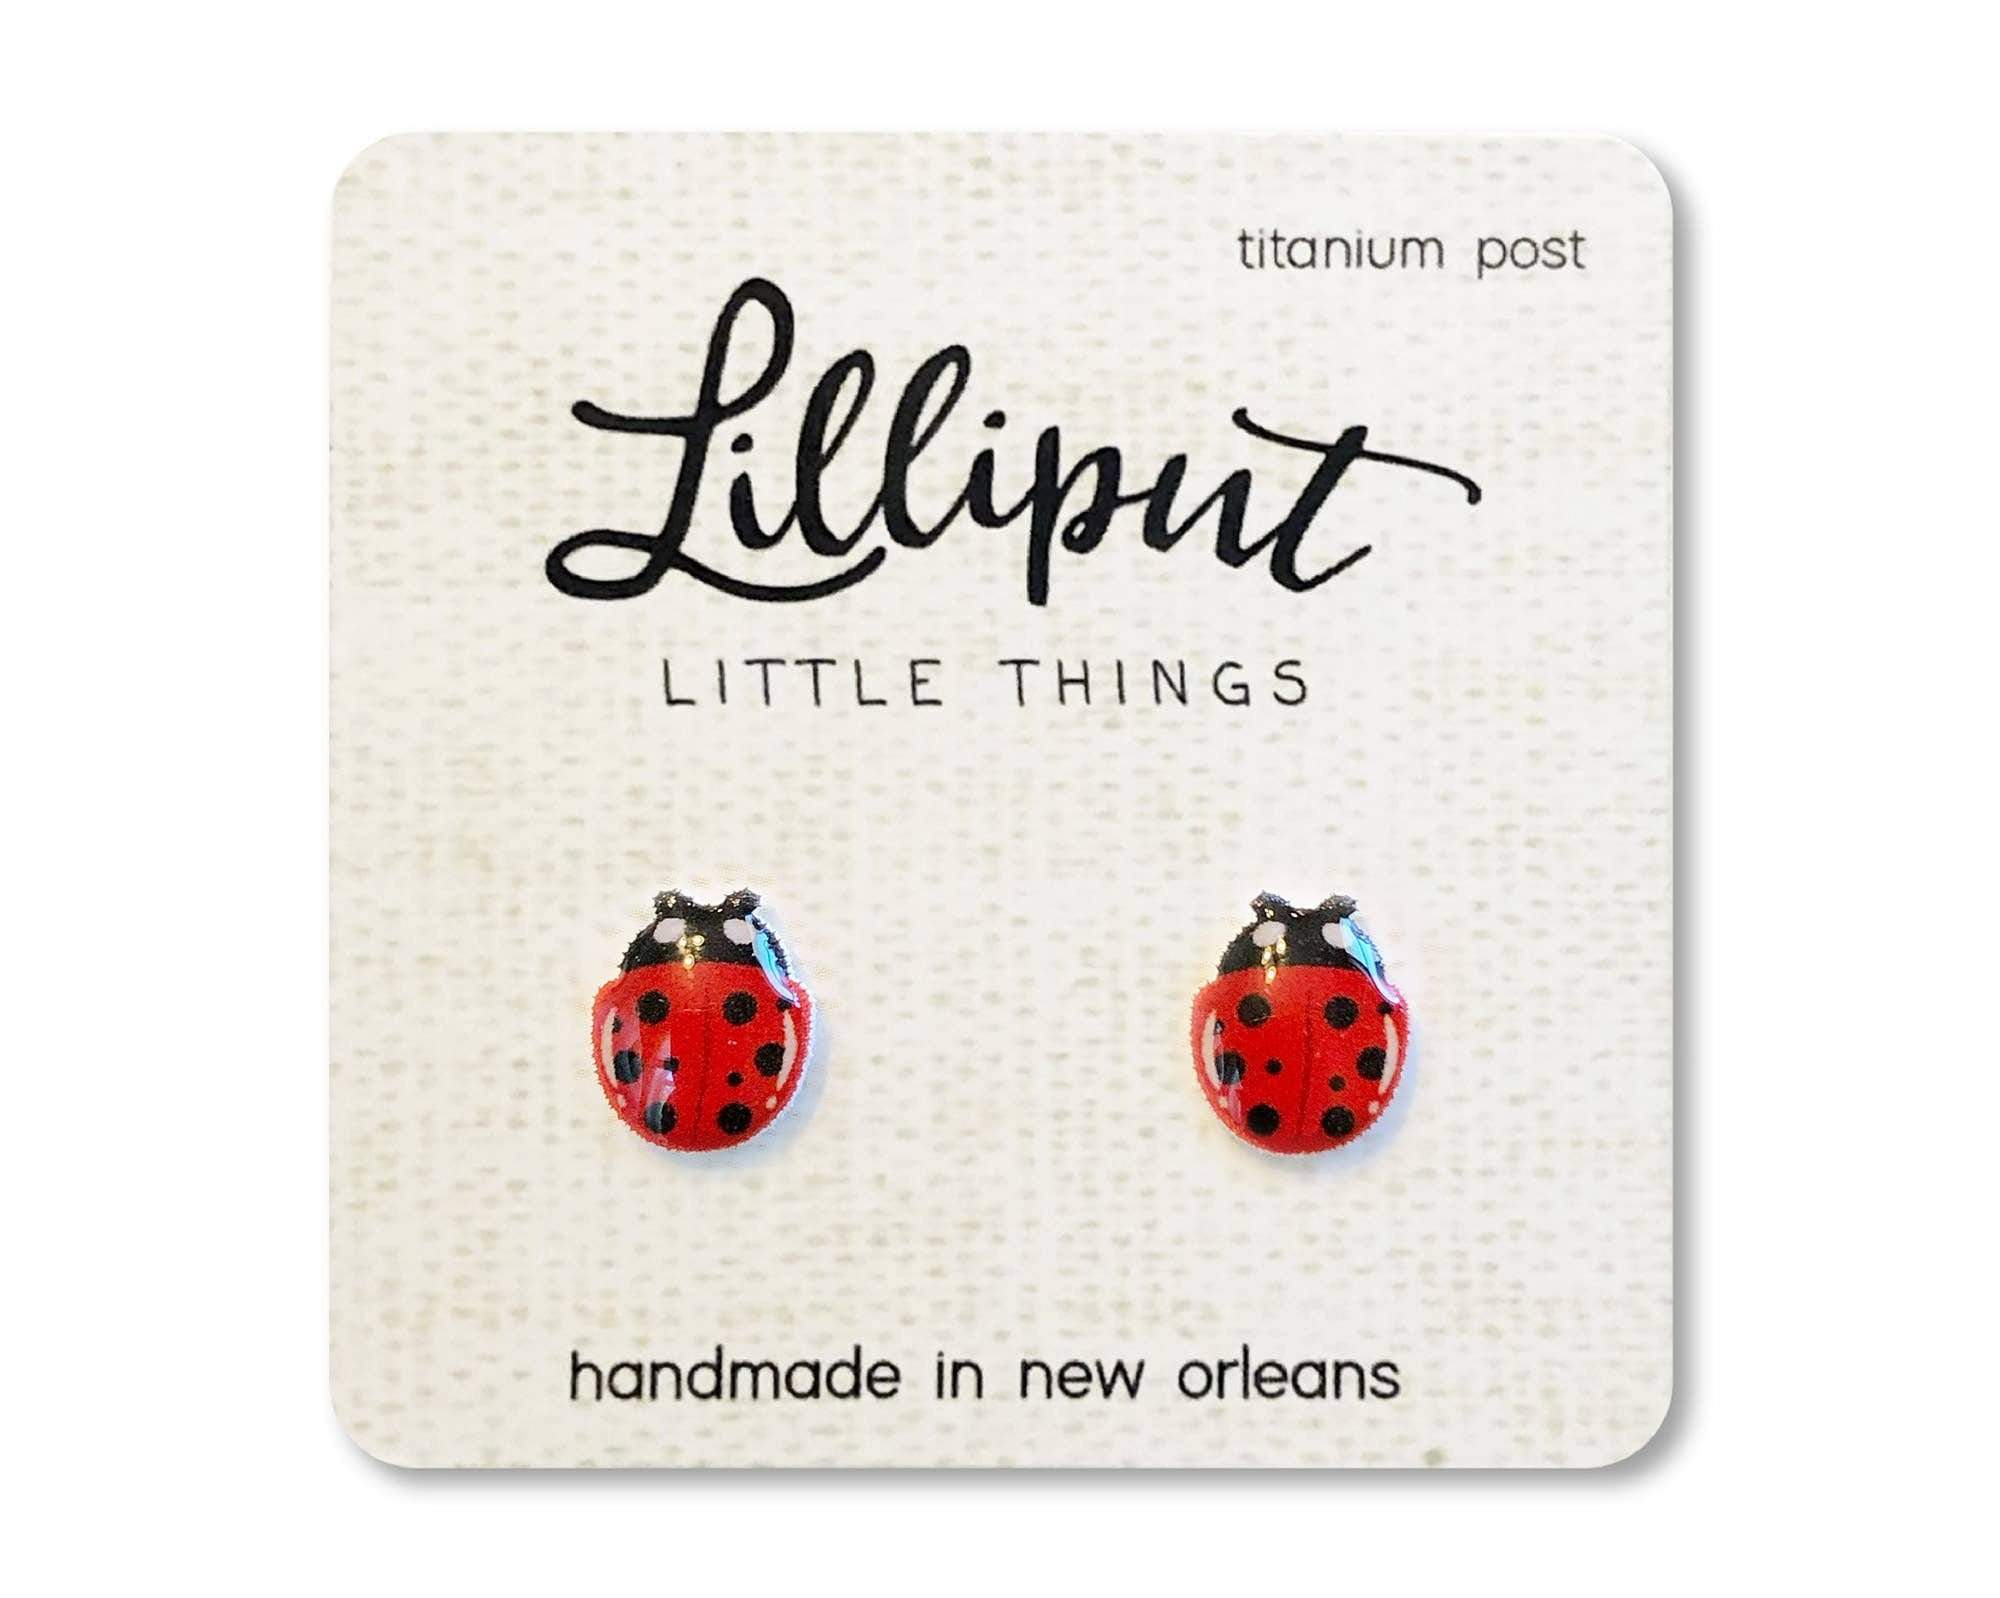 Ladybug Earrings Lilliput Little Things Clothing/Accessories